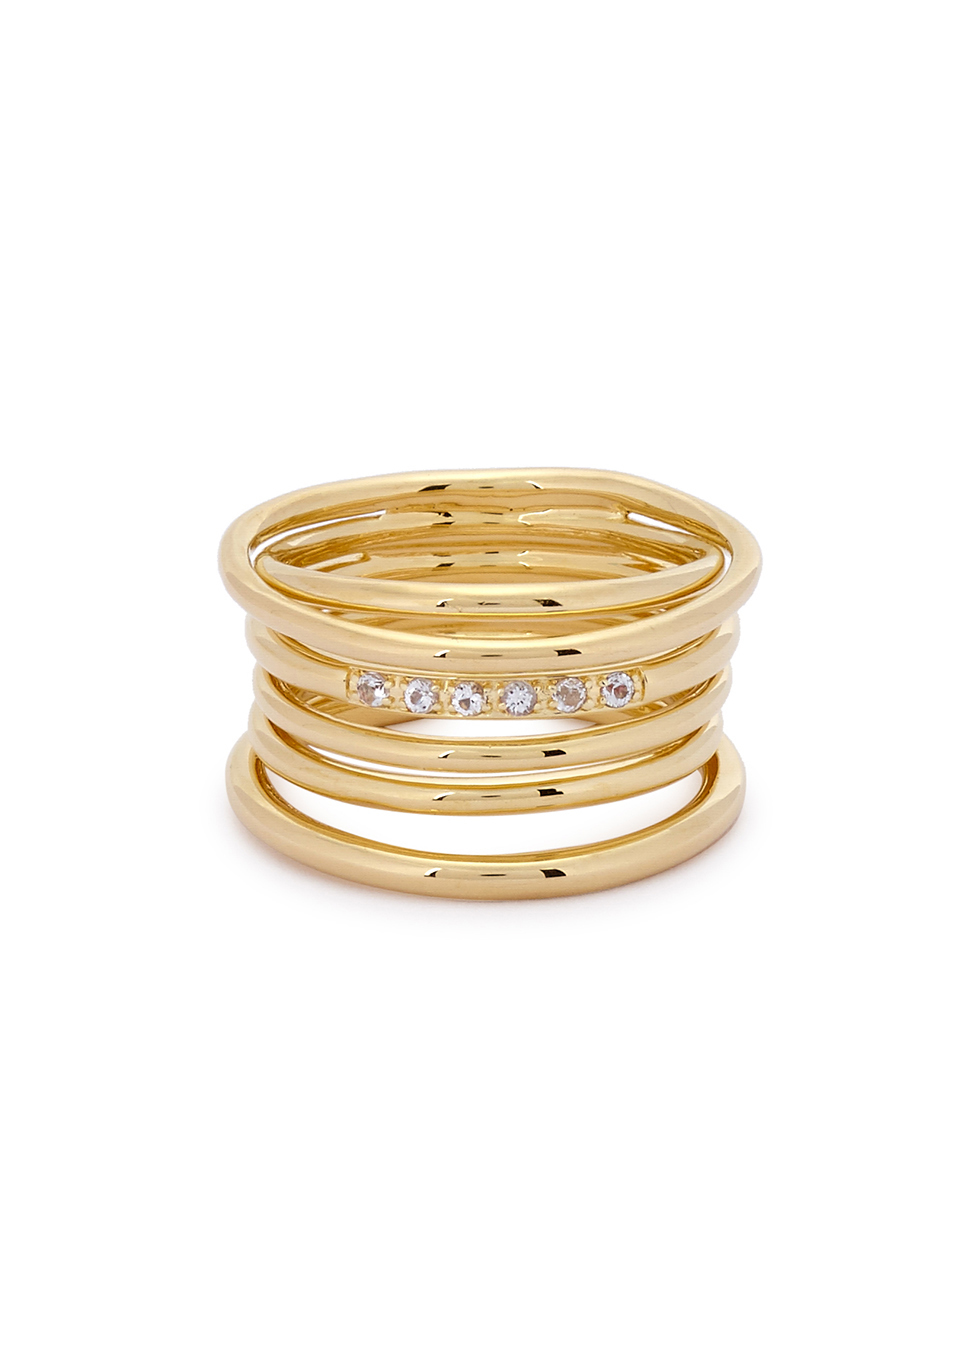 Roxy 23kt Gold Plated Ring - predominant colour: gold; occasions: evening, occasion; style: band; size: large/oversized; material: chain/metal; finish: metallic; embellishment: crystals/glass; season: a/w 2016